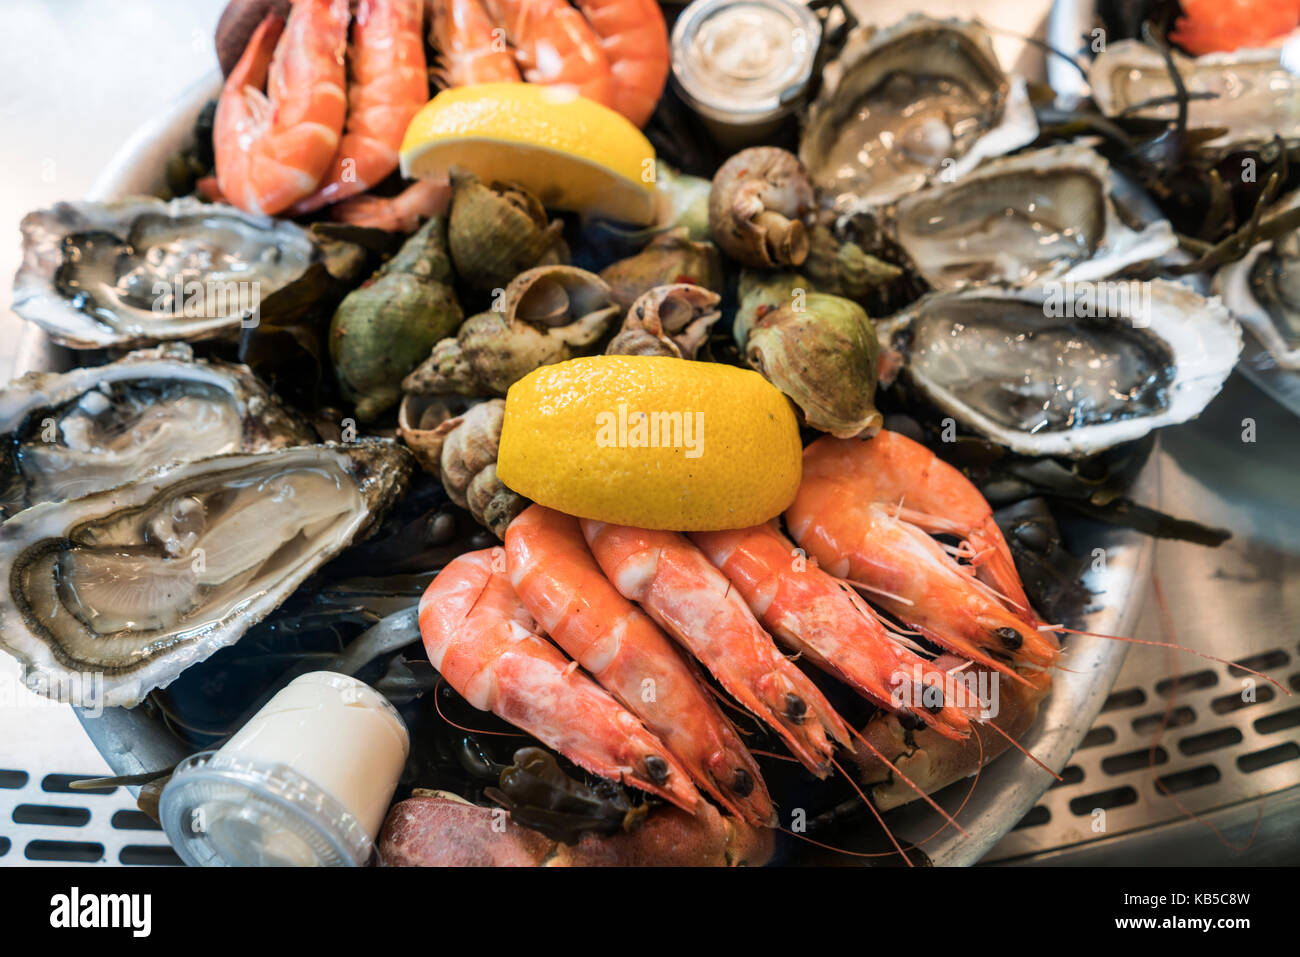 Oyster, shrimps, Marche de Capucins, Bordeaux, France - Stock Image